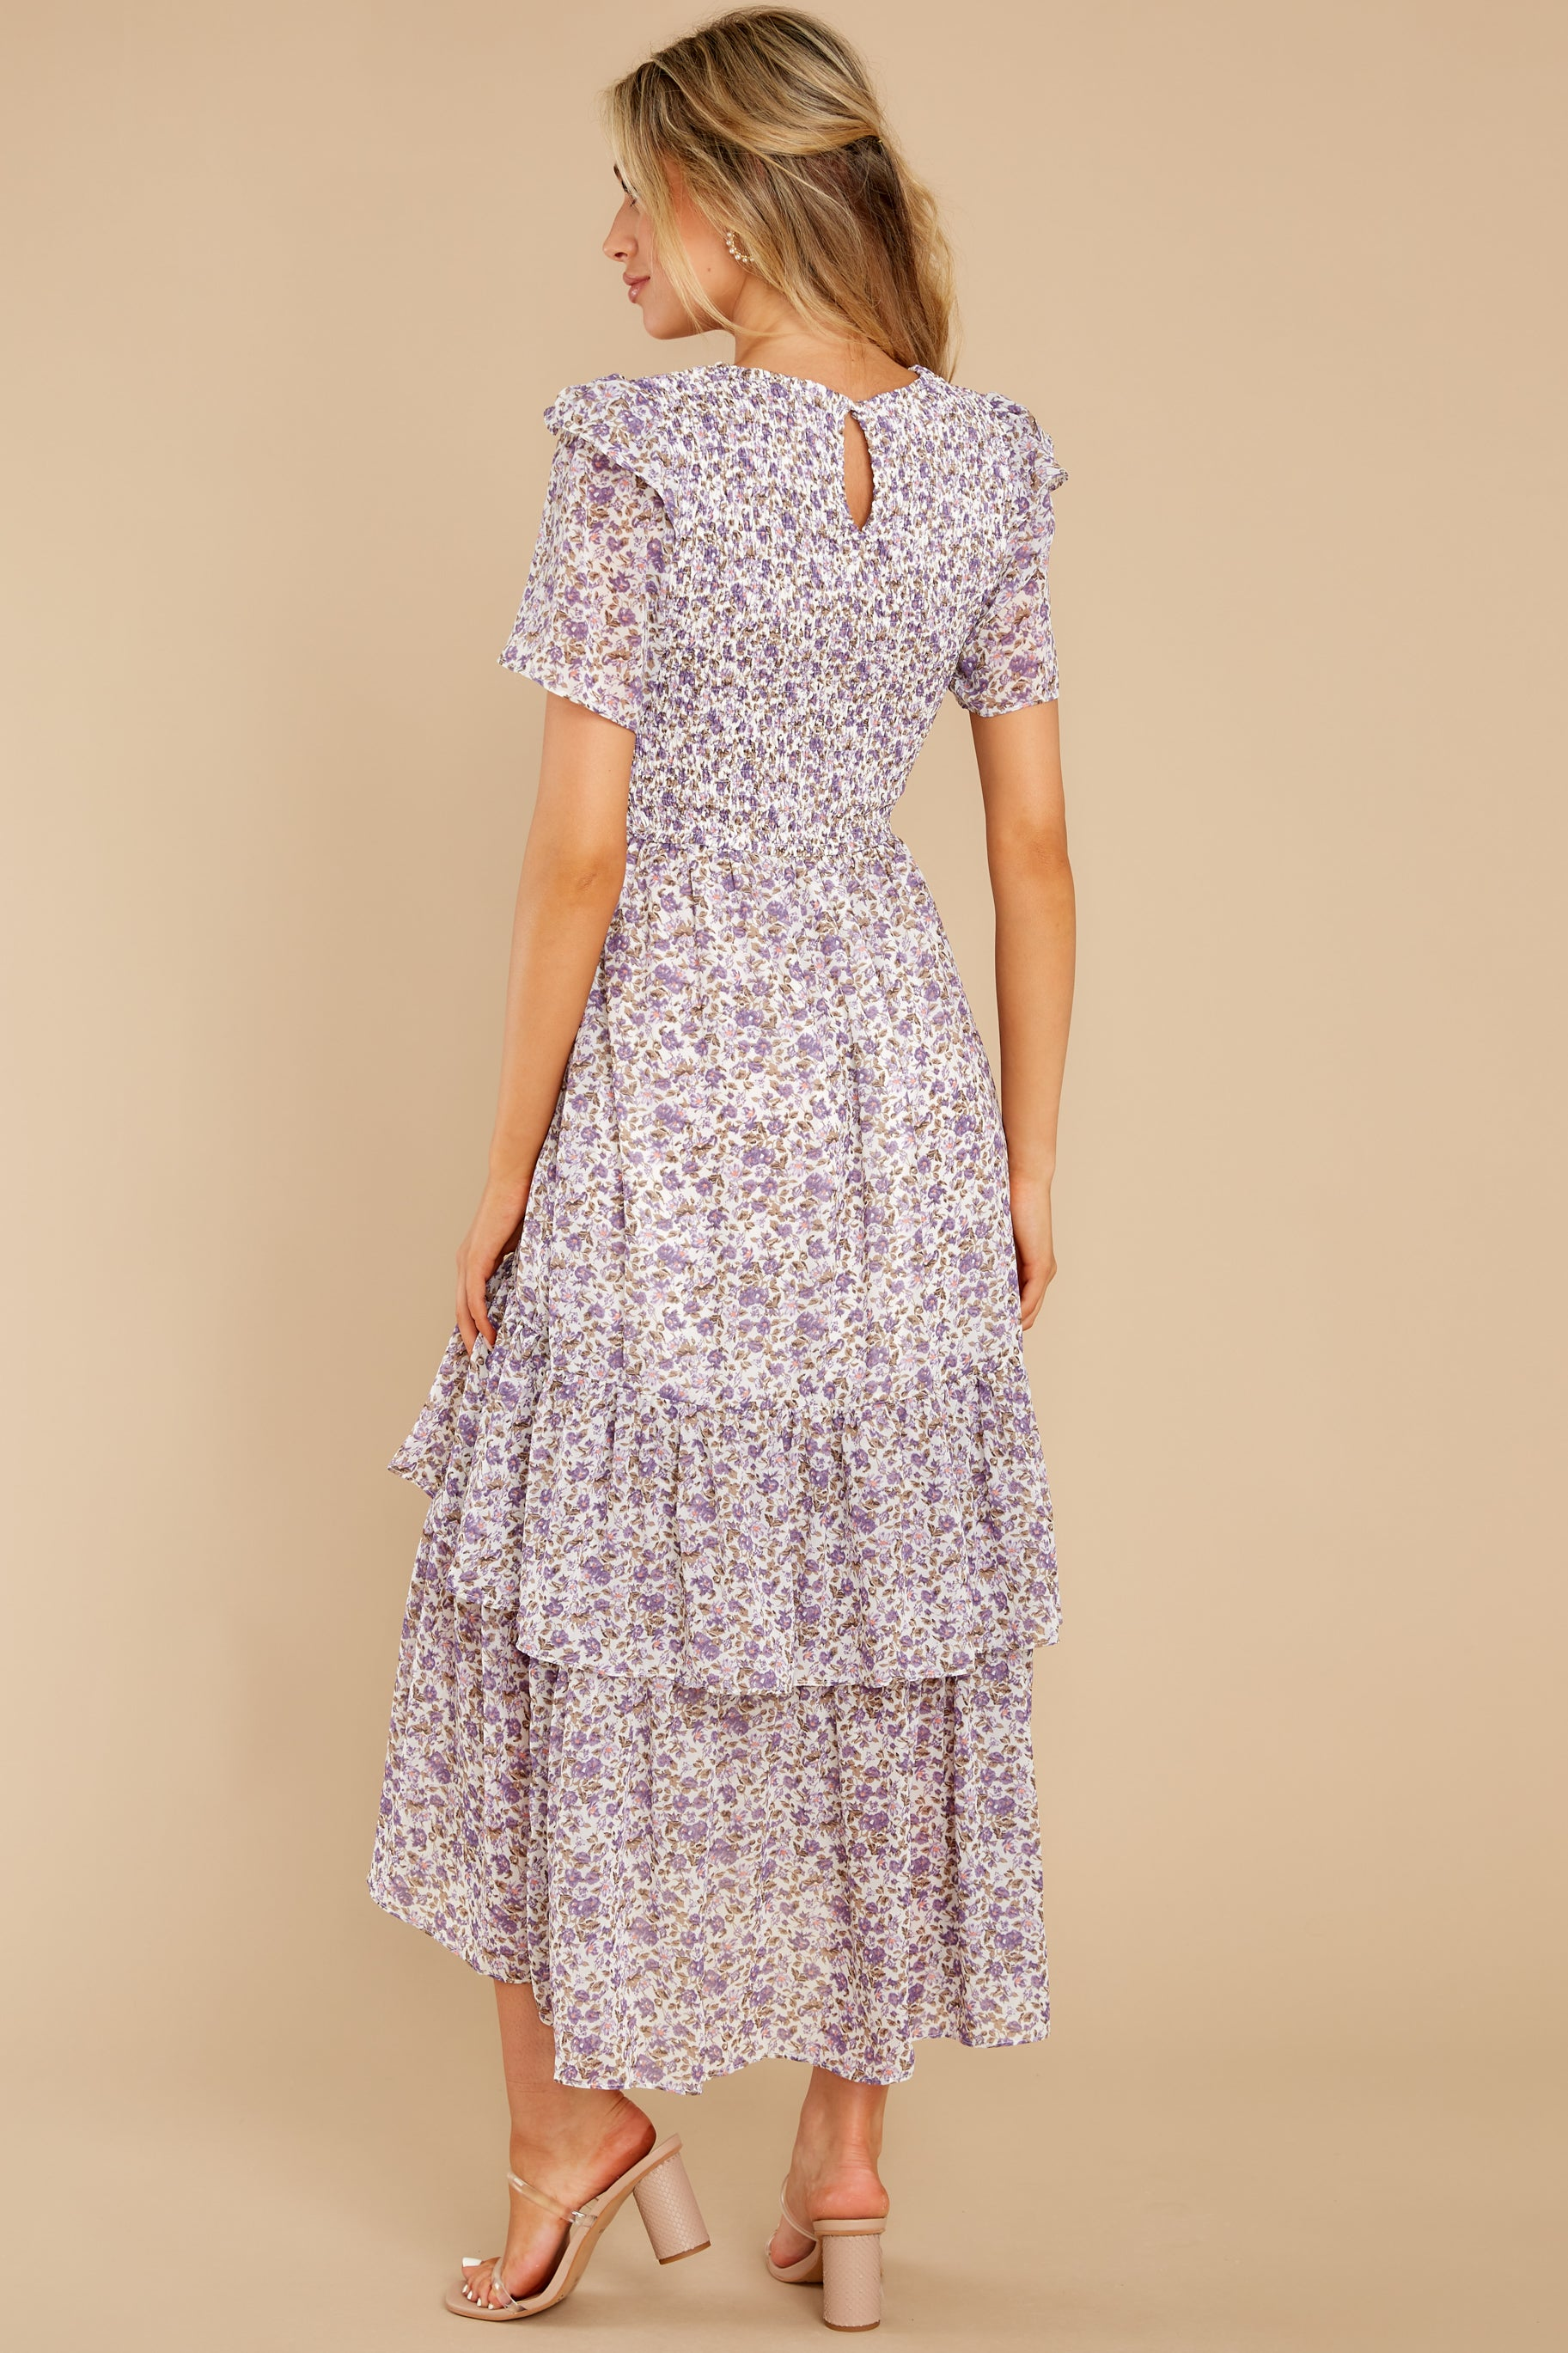 6 Magnetic Attraction Purple Floral Print Maxi Dress at reddress.com